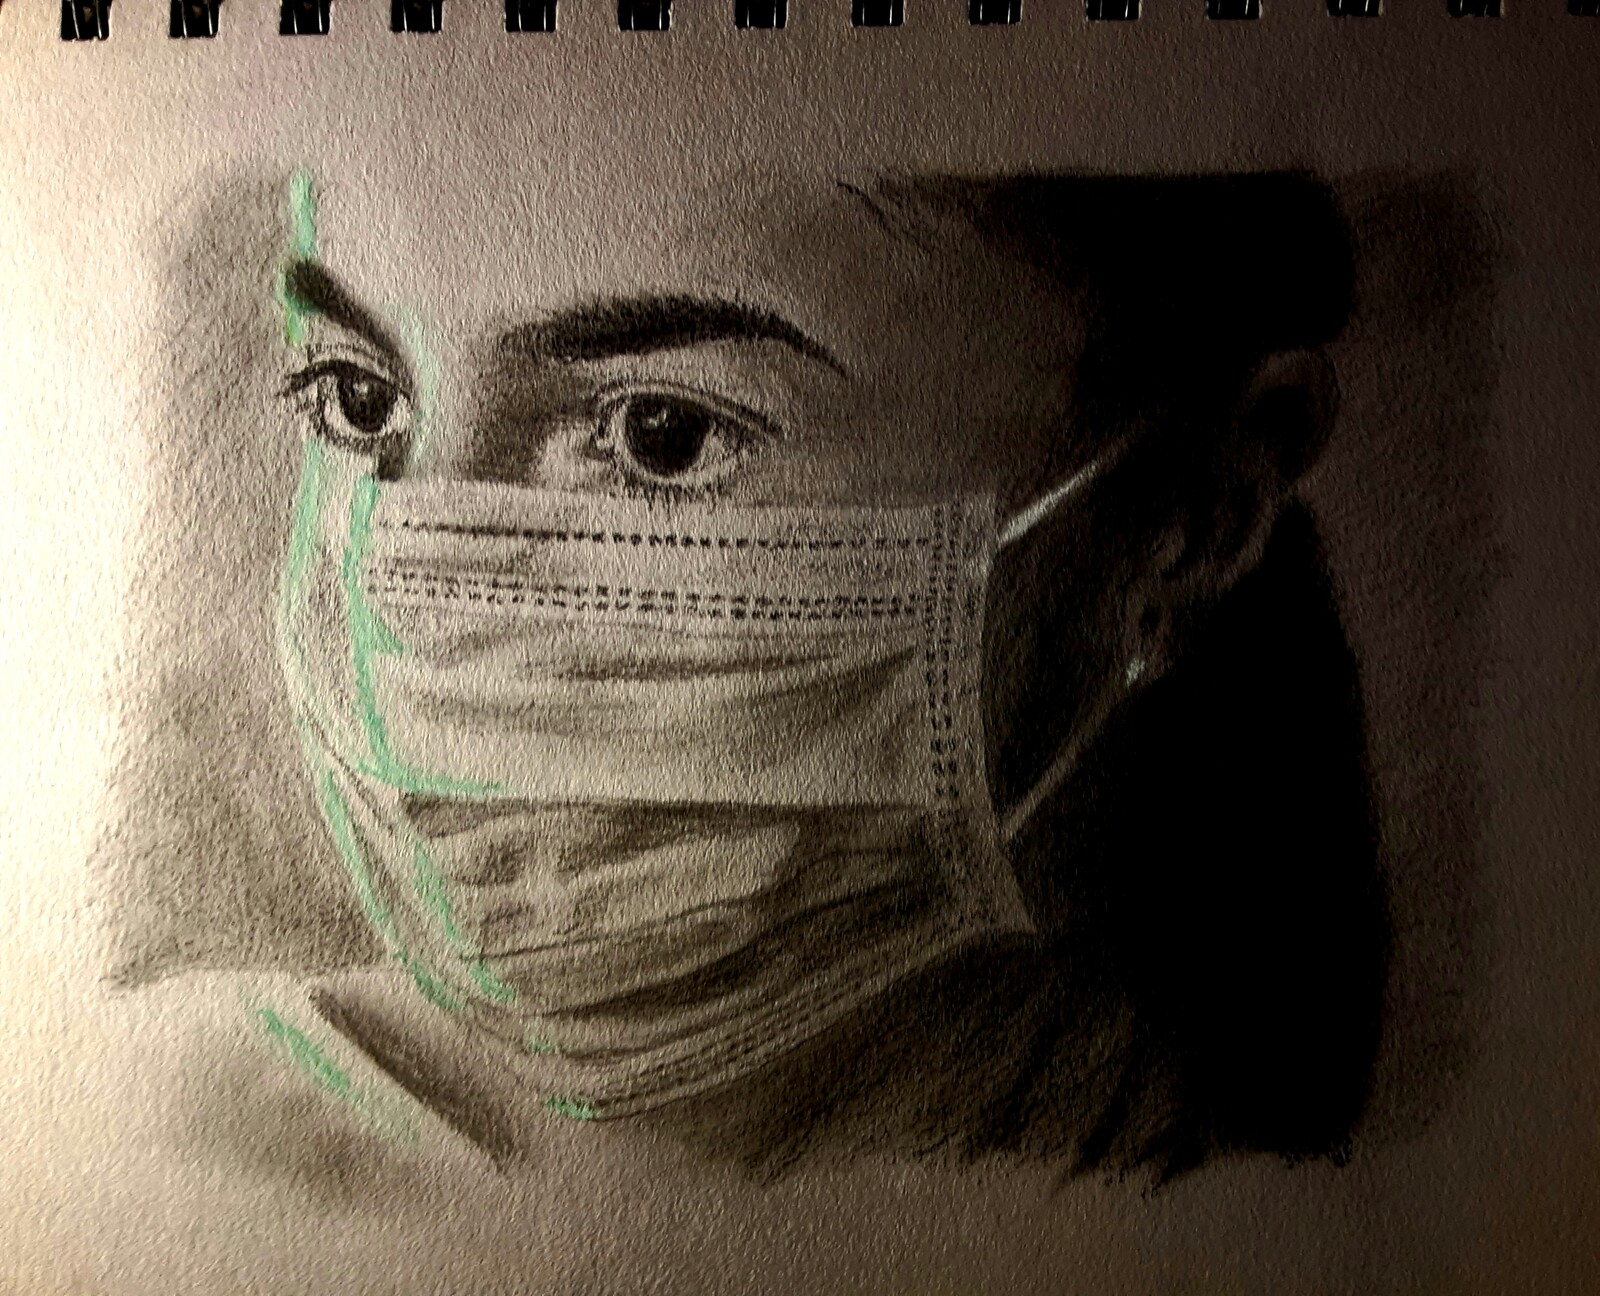 Charcoal sketch of a woman in a mask